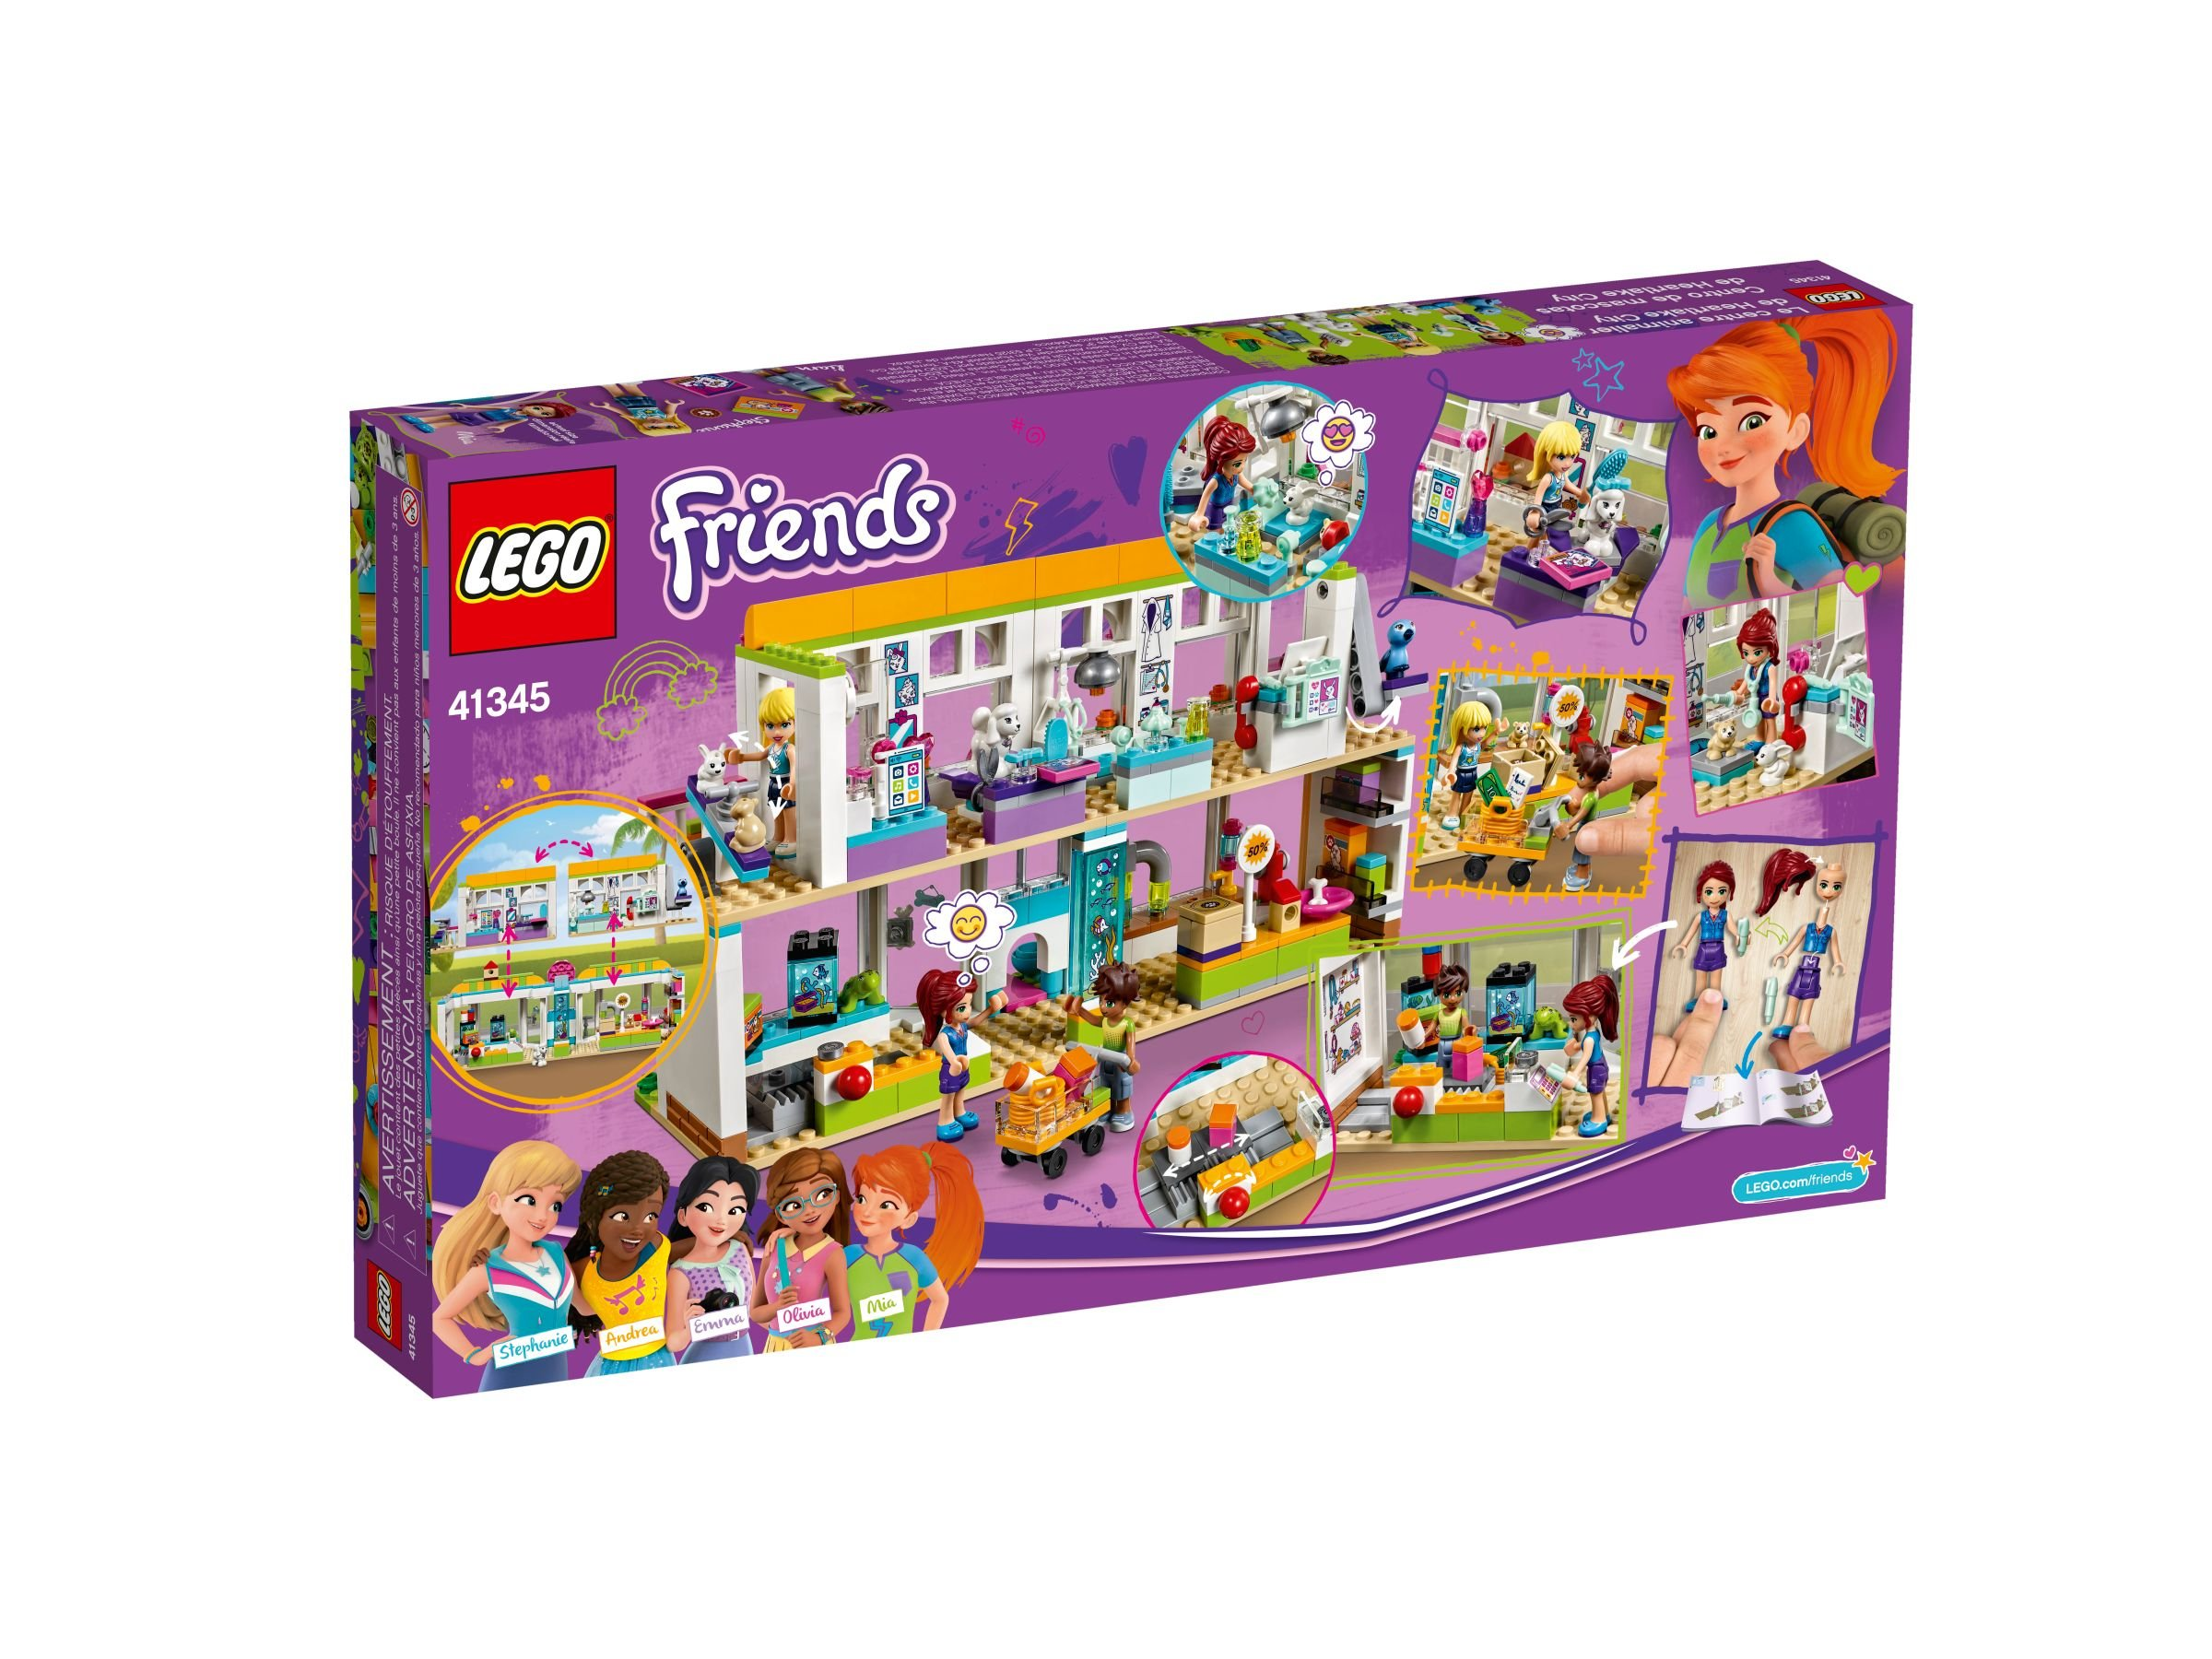 LEGO Friends 41345 Heartlake City Haustierzentrum LEGO_41345_alt4.jpg